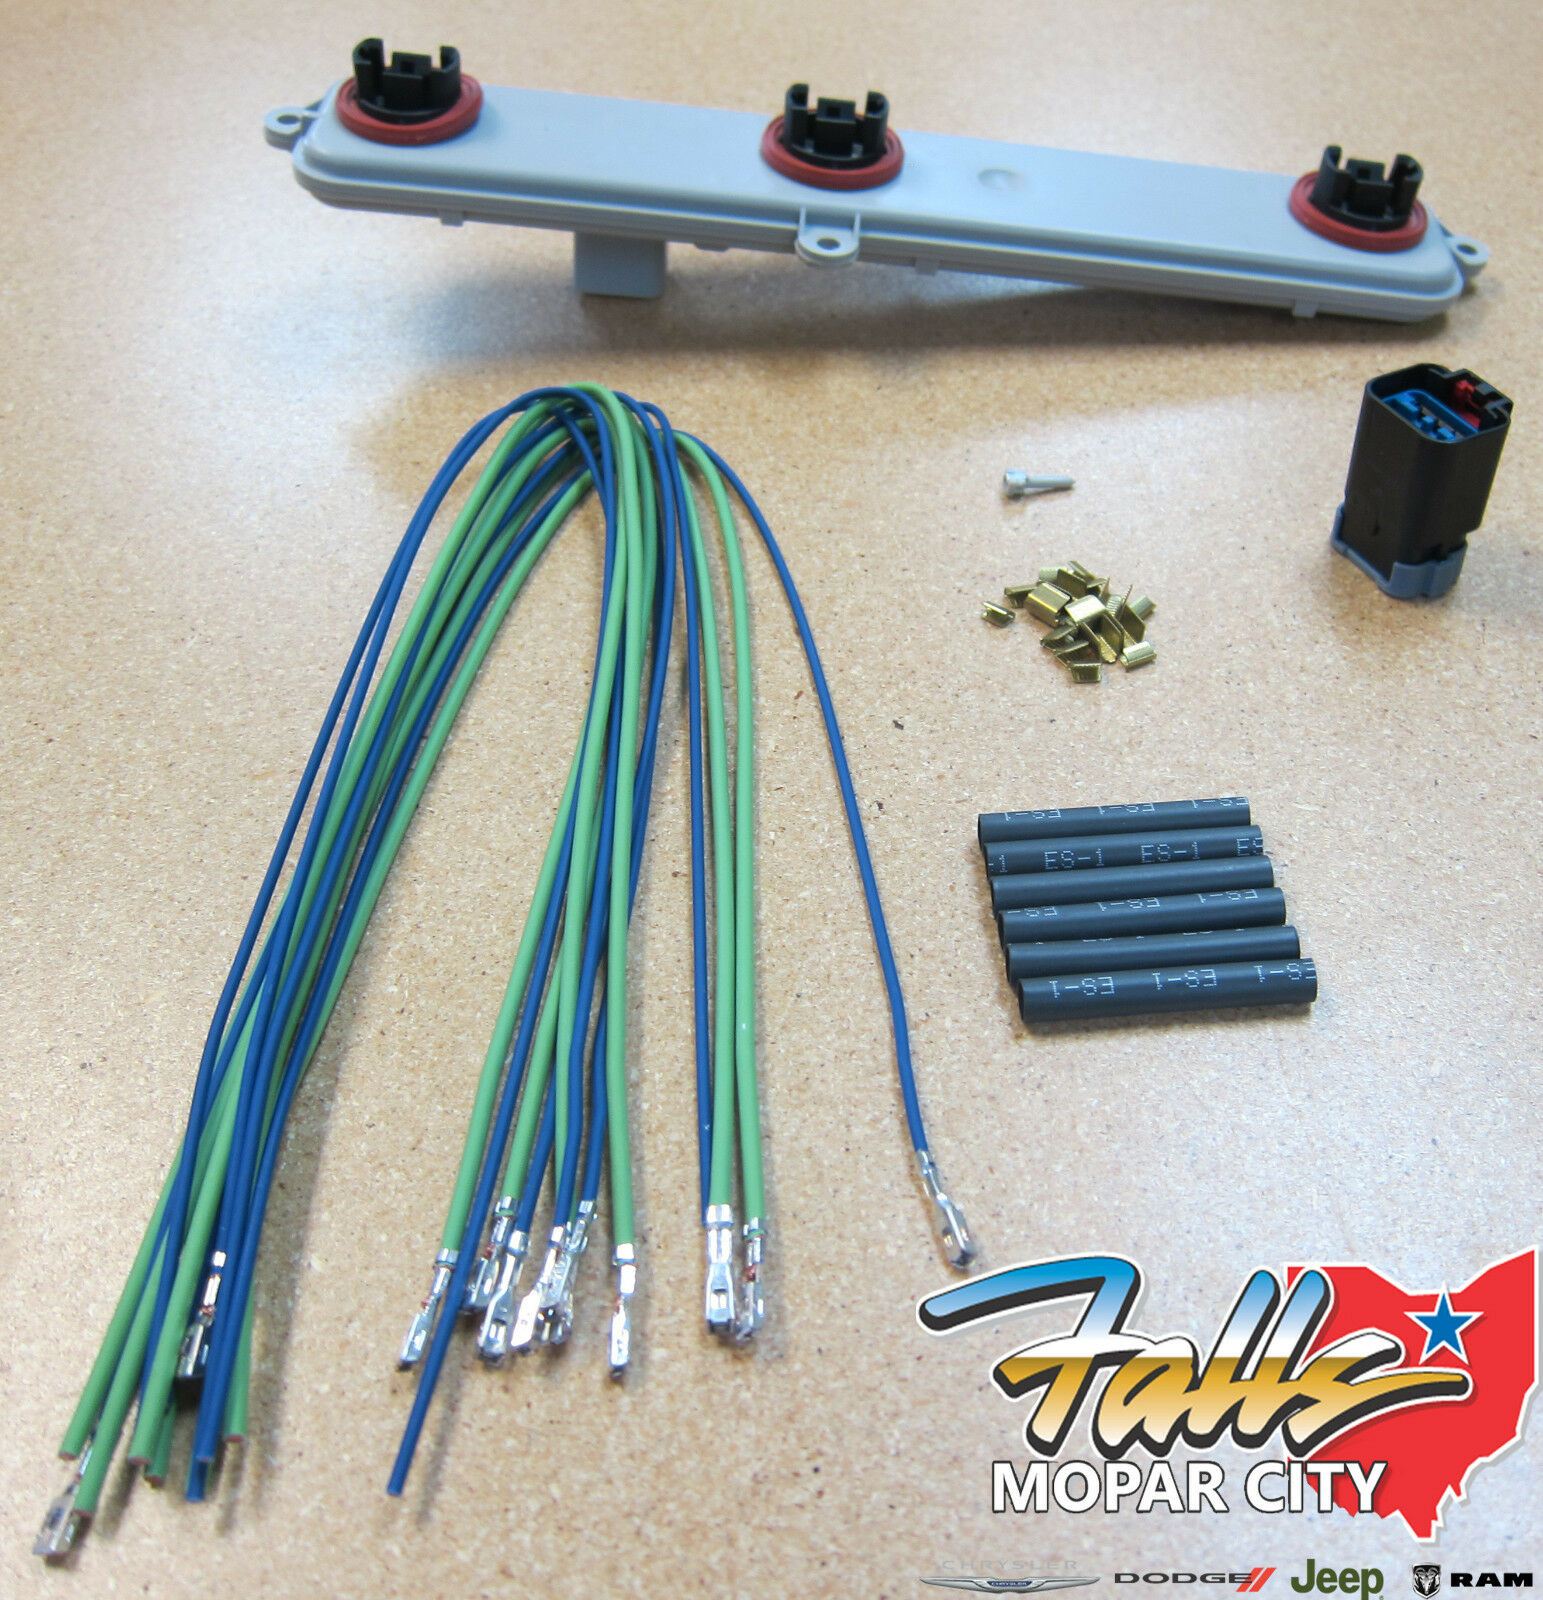 2006 Dodge Ram 1500 Trailer Wiring Harness - Trusted Wiring Diagram